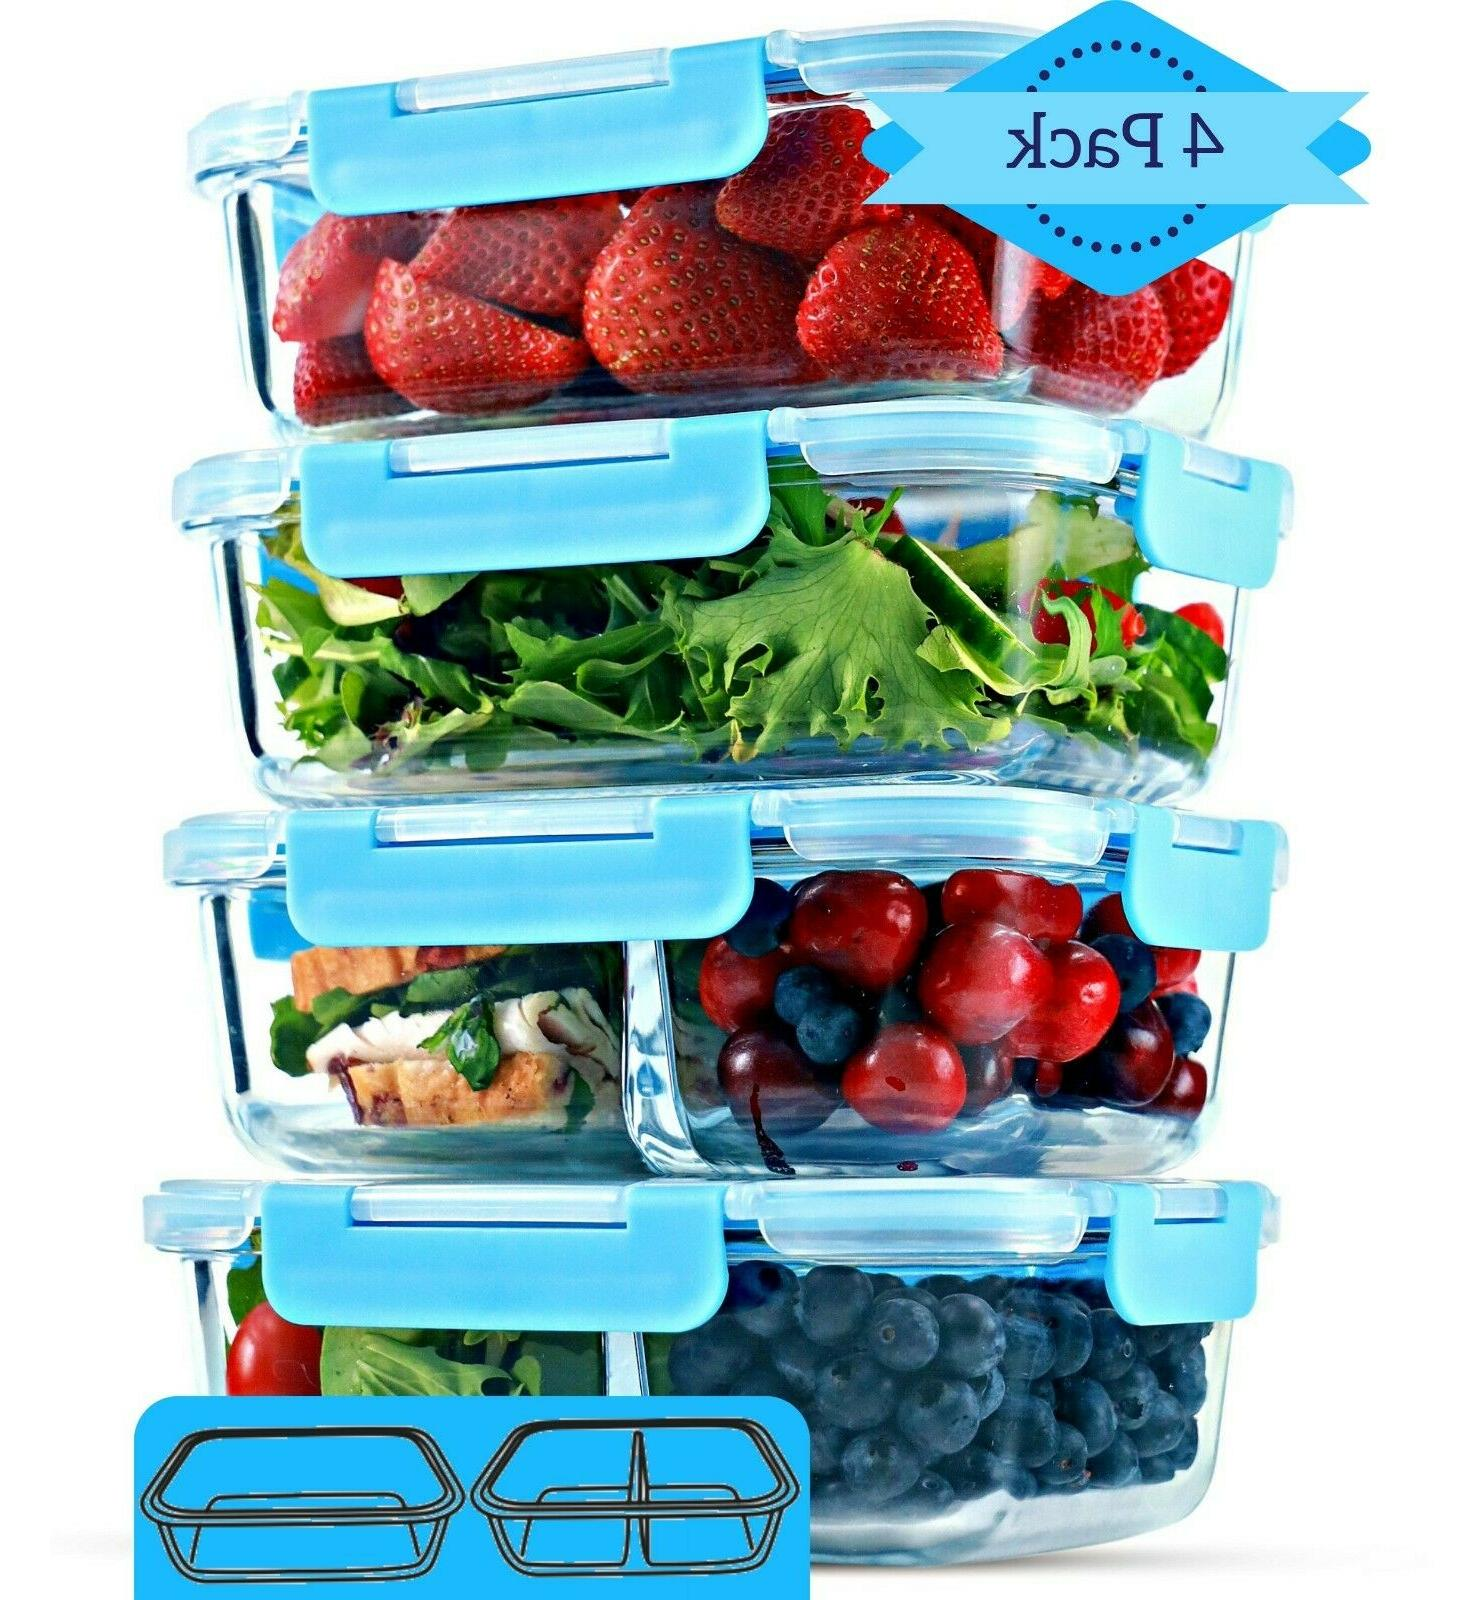 1 and 2 compartment glass meal prep